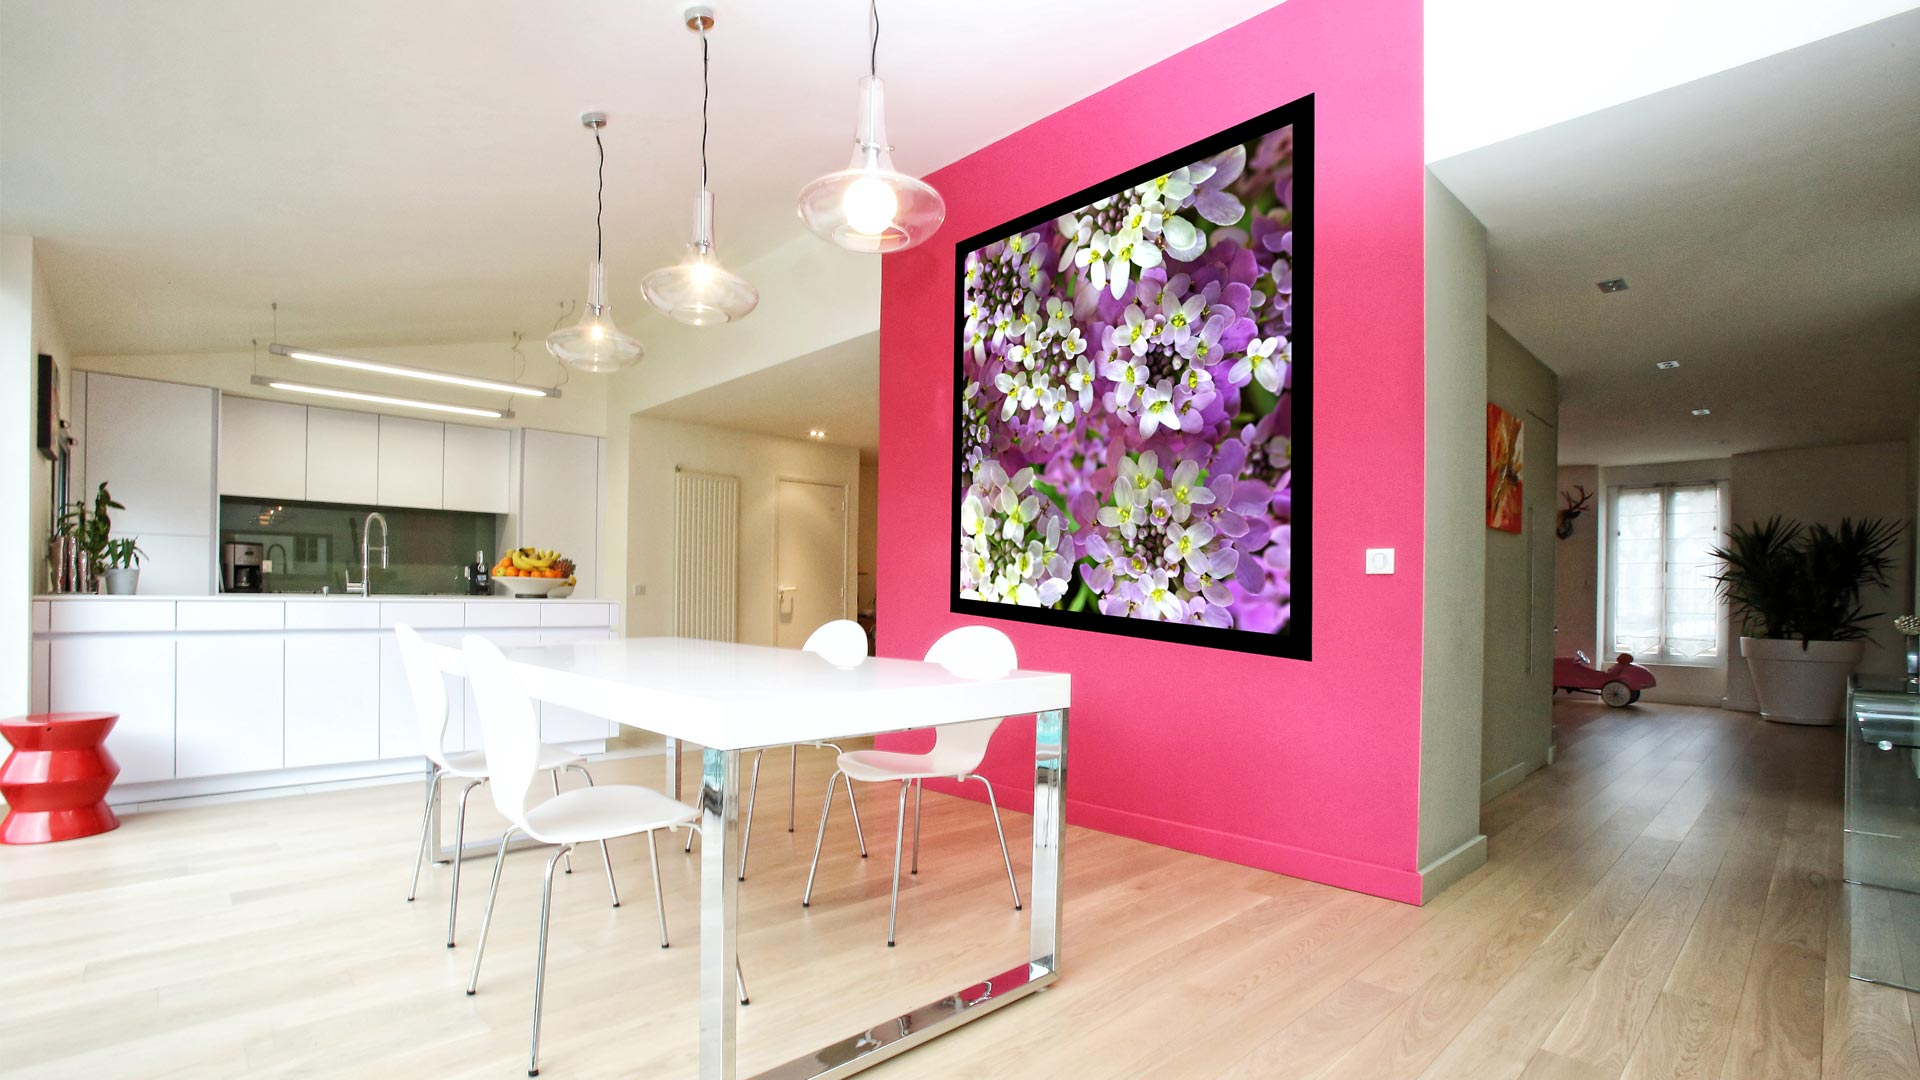 Photo decoration interieure meilleures images d for Exemple decoration interieur